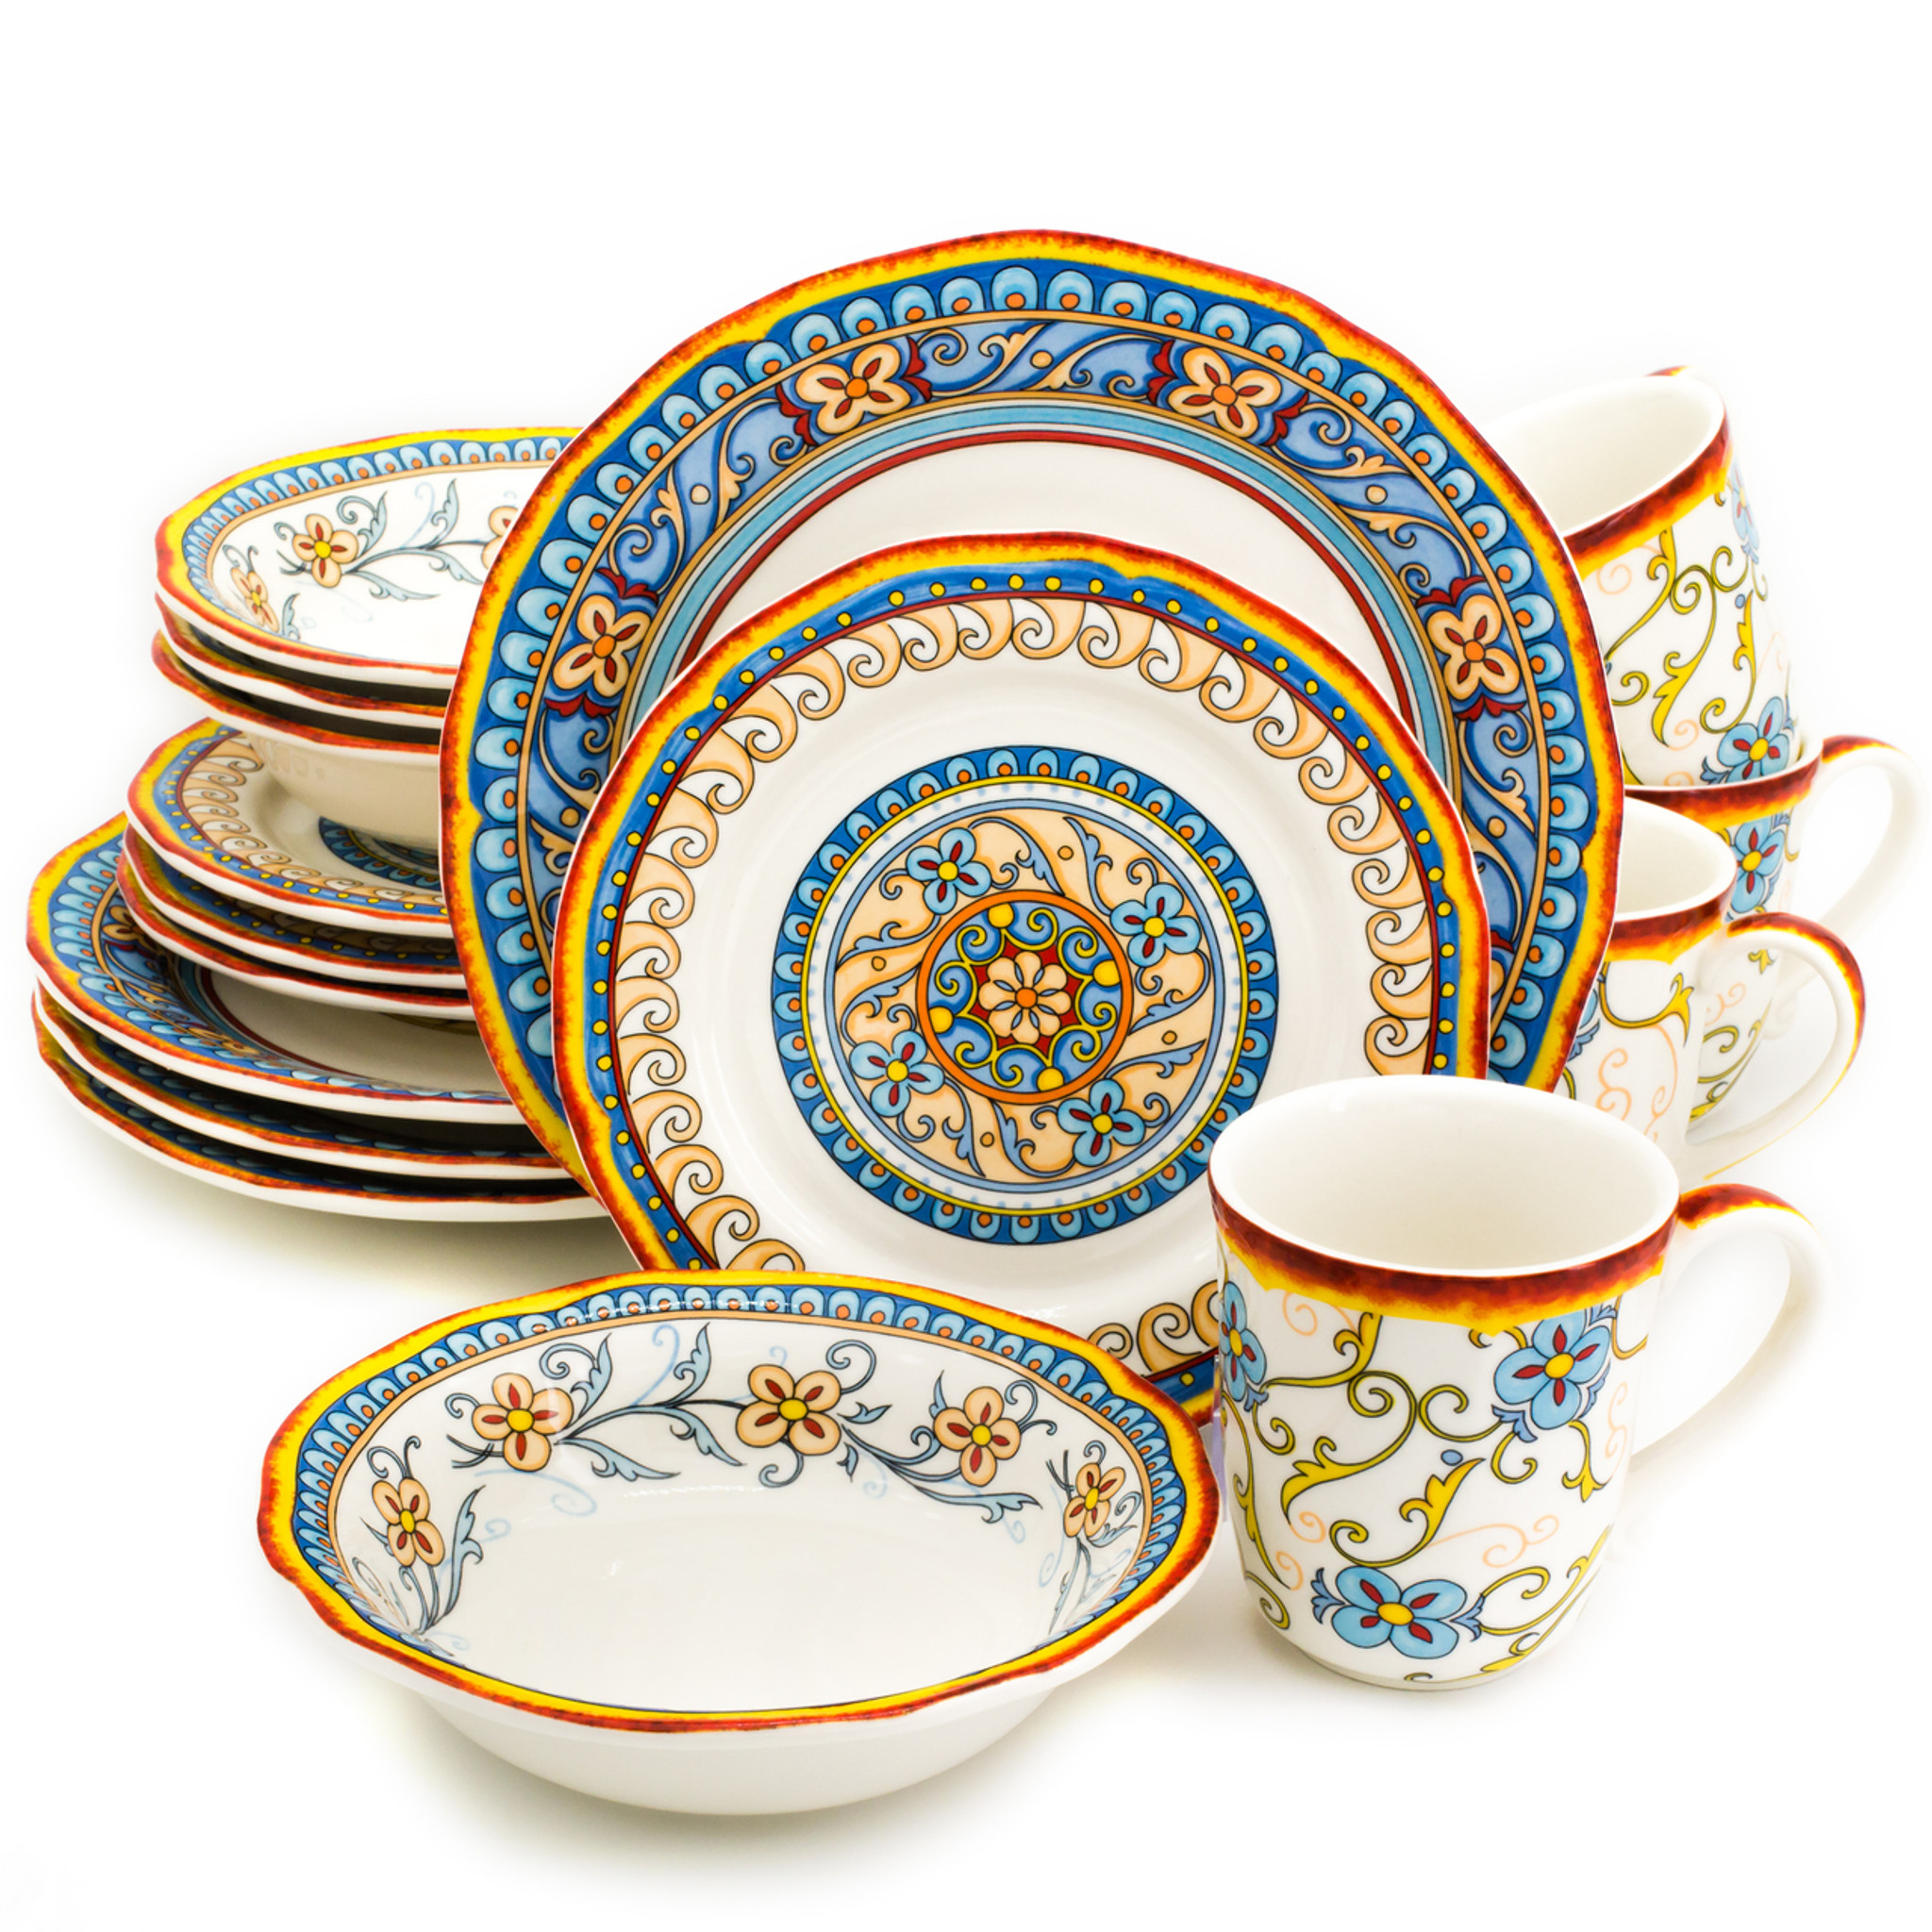 Duomo 16 Piece Dinnerware Set Service for 4  sc 1 st  Euro Ceramica : 16 piece dinnerware sets - pezcame.com